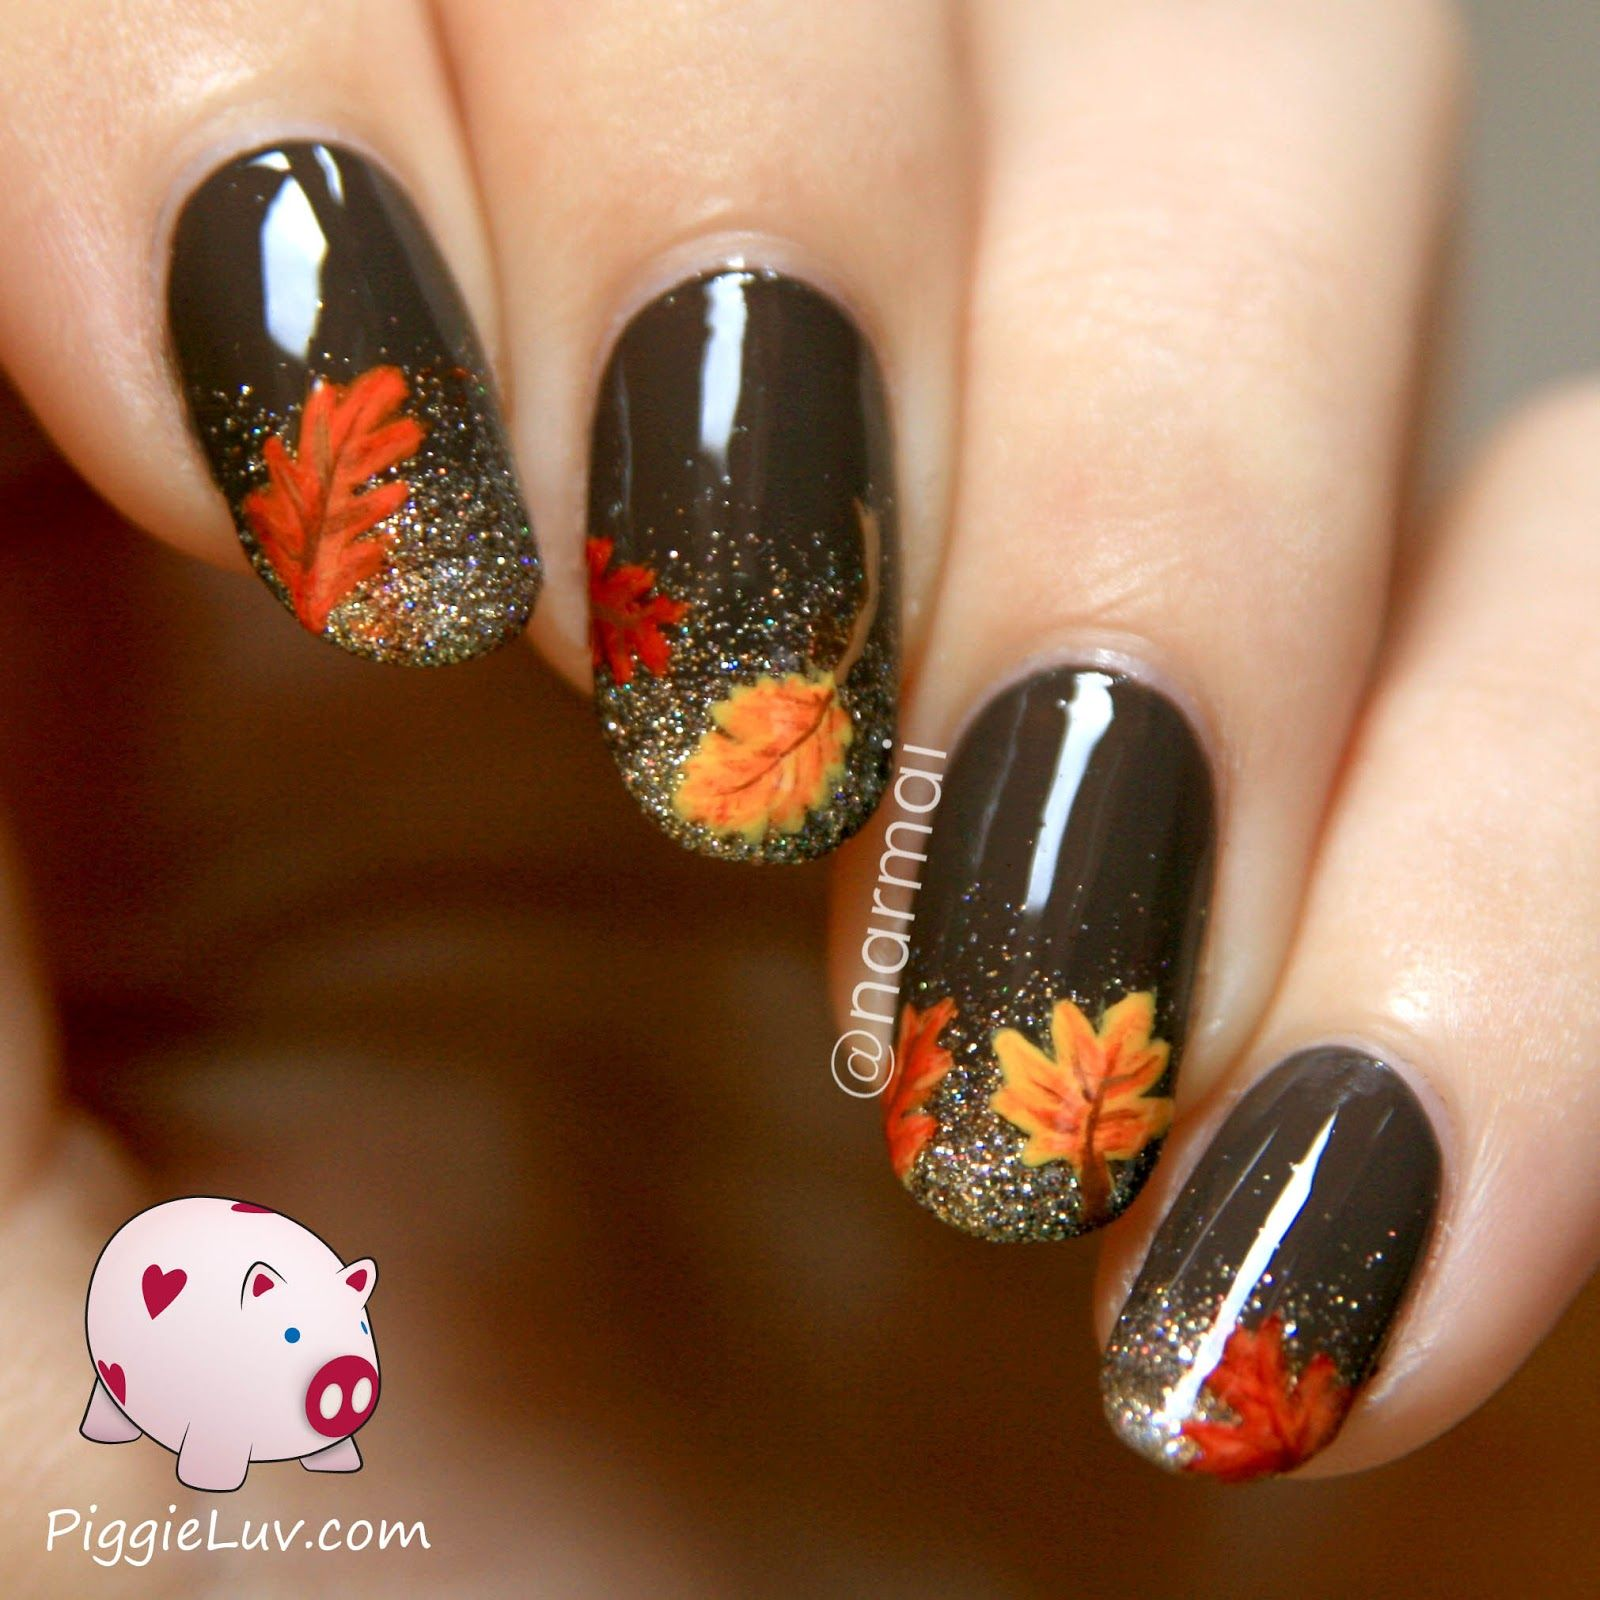 Piggieluv Fall Nail Art Autumn Leaves On Glitter Grant